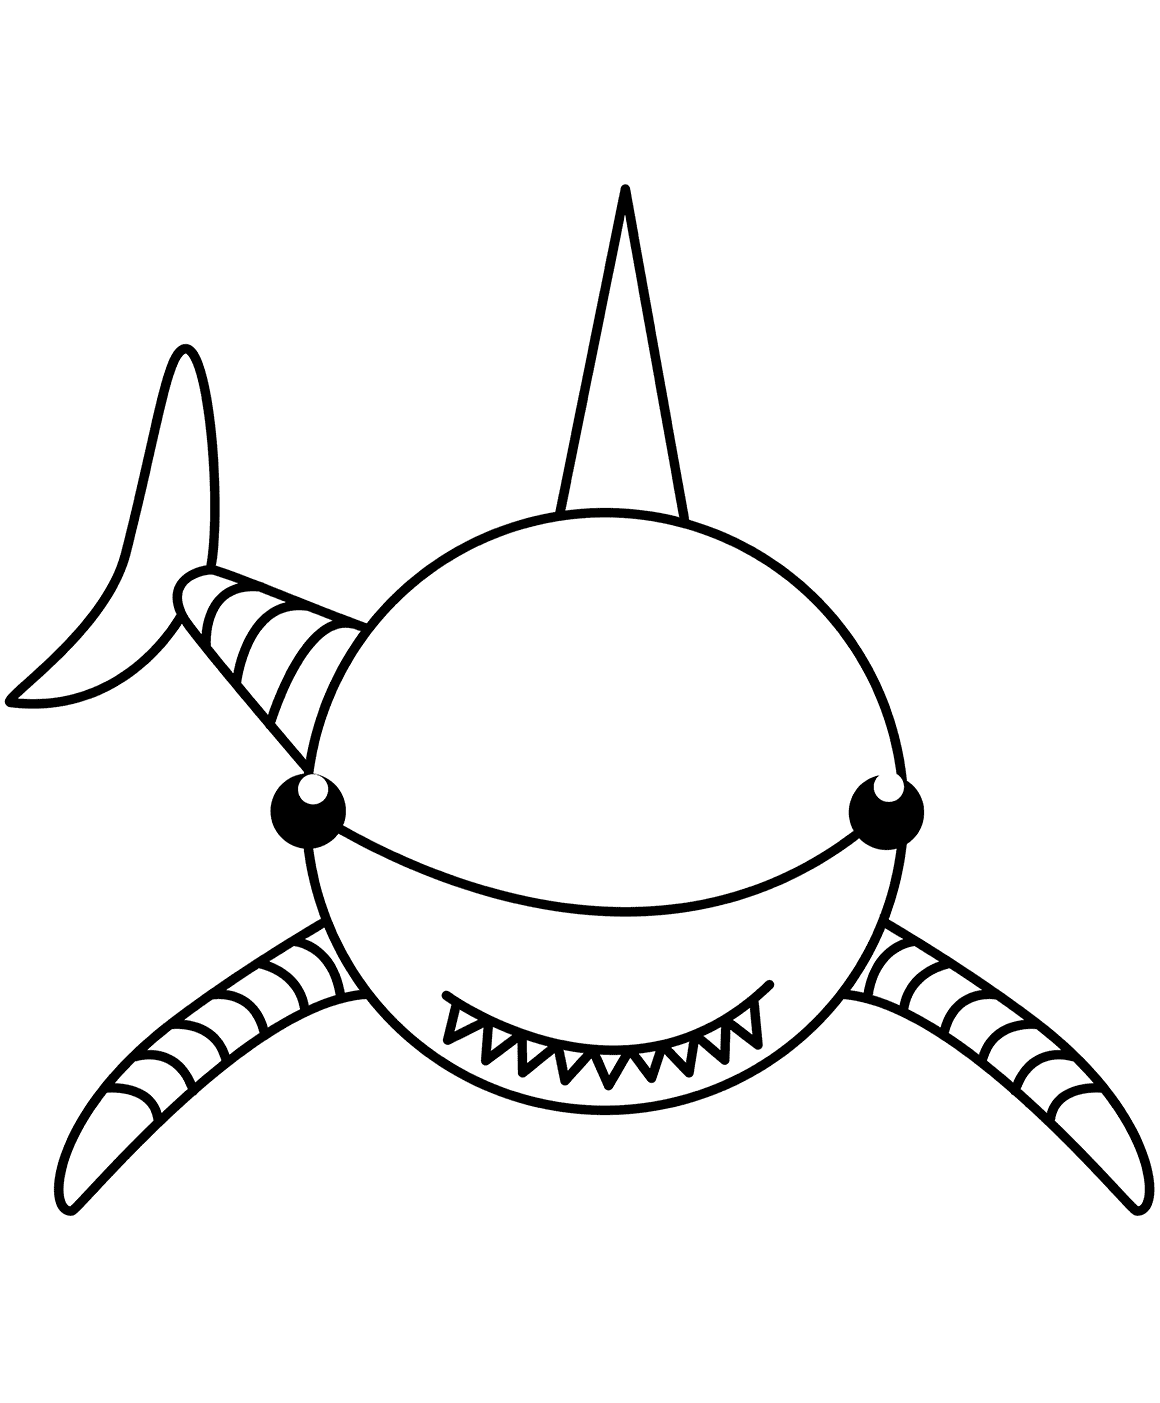 shark pictures to colour in coloring pictures of sharks free coloring pictures pictures to in shark colour